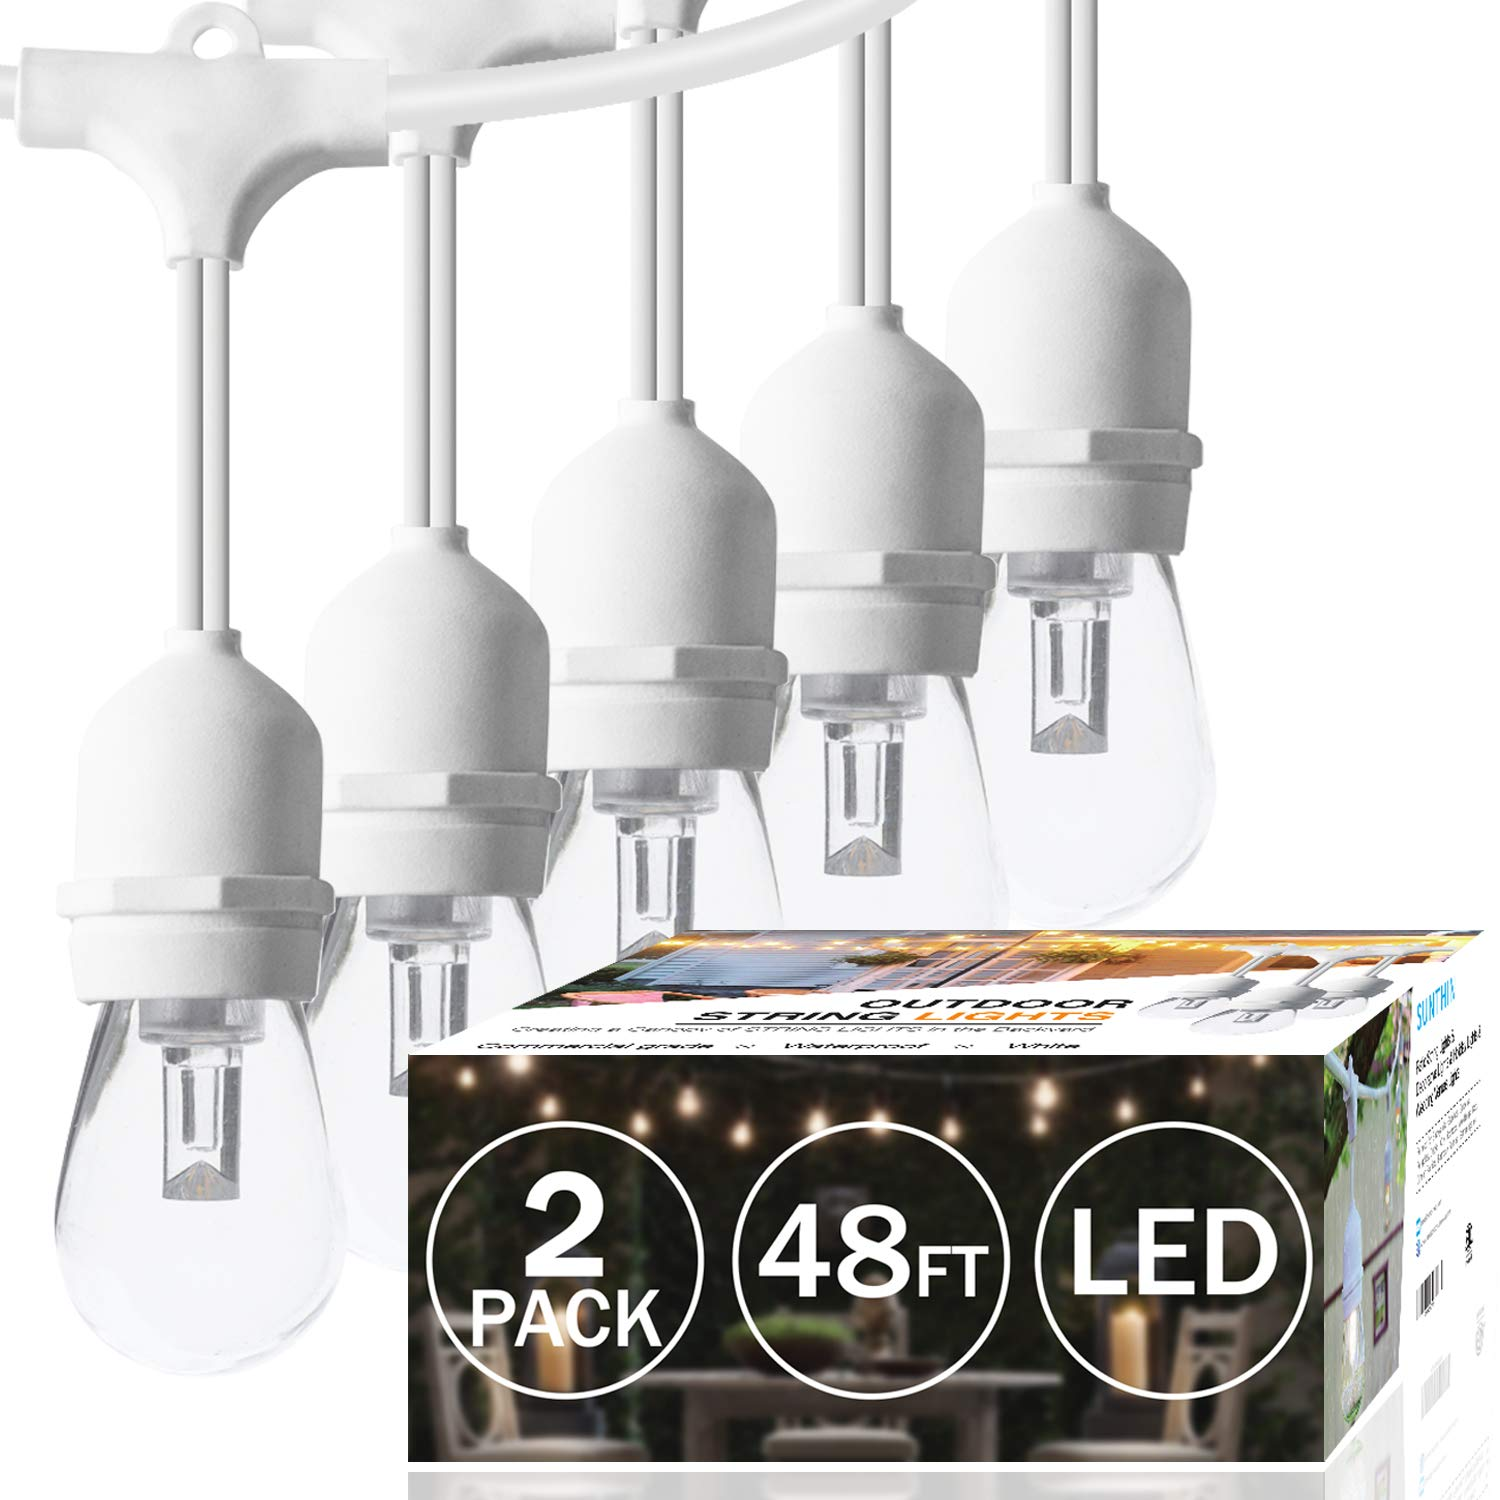 SUNTHIN 2-Pack 48ft Dimmable White Outdoor String Lights, LED Patio Lights String with 15 x E26 Sockets, 18 x 0.9 Watt S14 Edison Bulbs (3 Spares) Hanging Light, Waterproof Wedding String Lighting